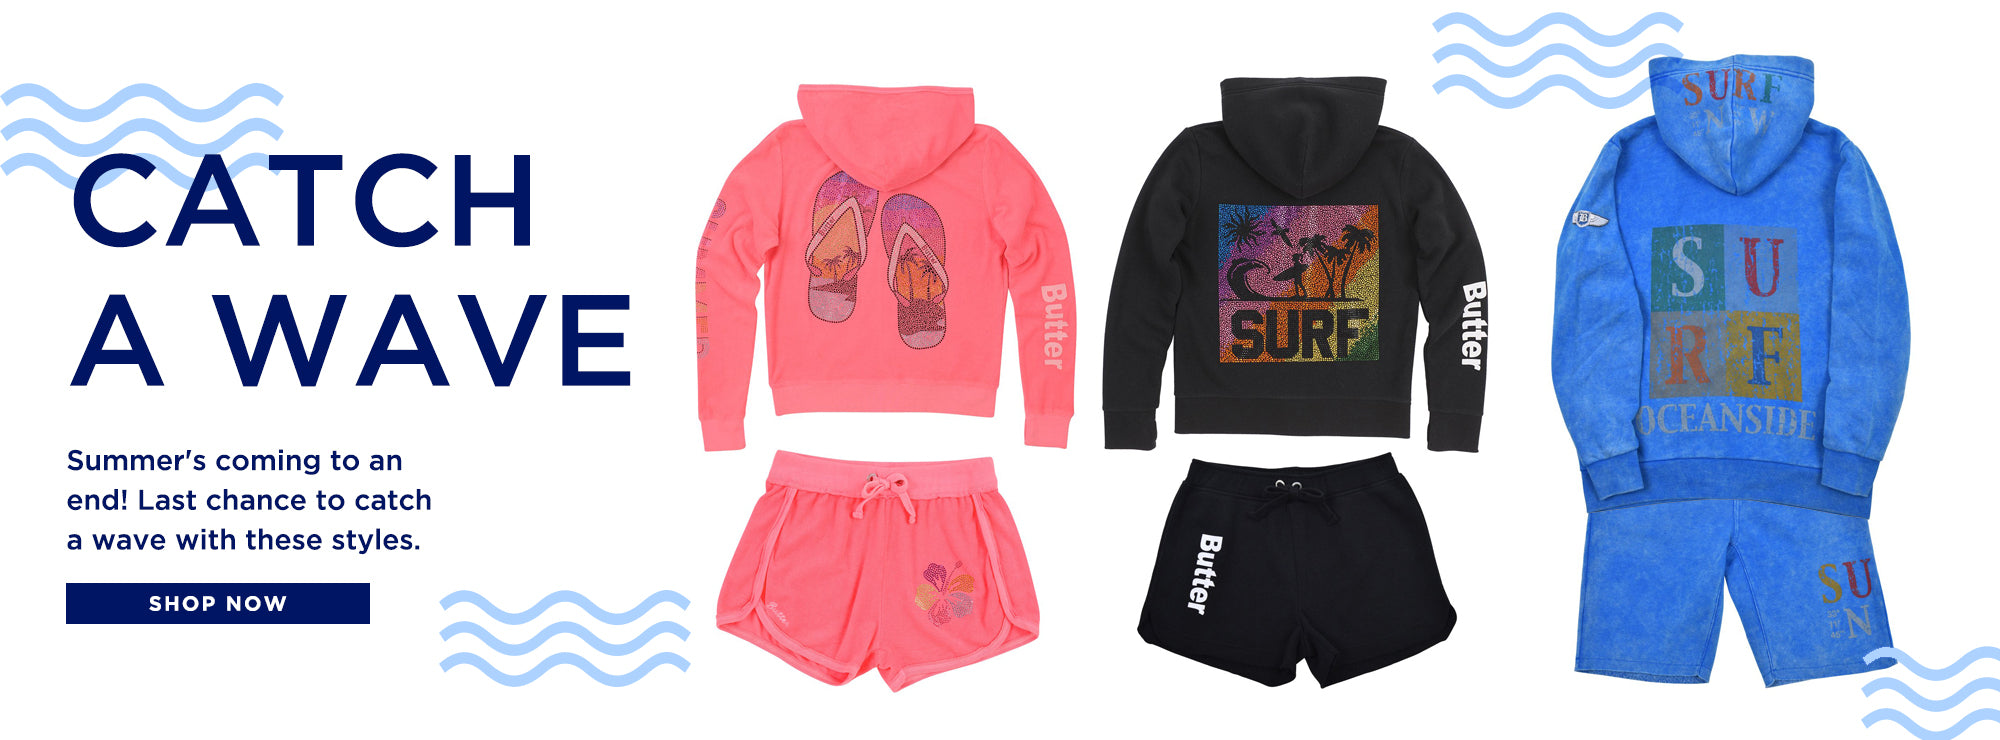 Summer is coming to an end. Catch a wave with these latest Summer styles for kids.